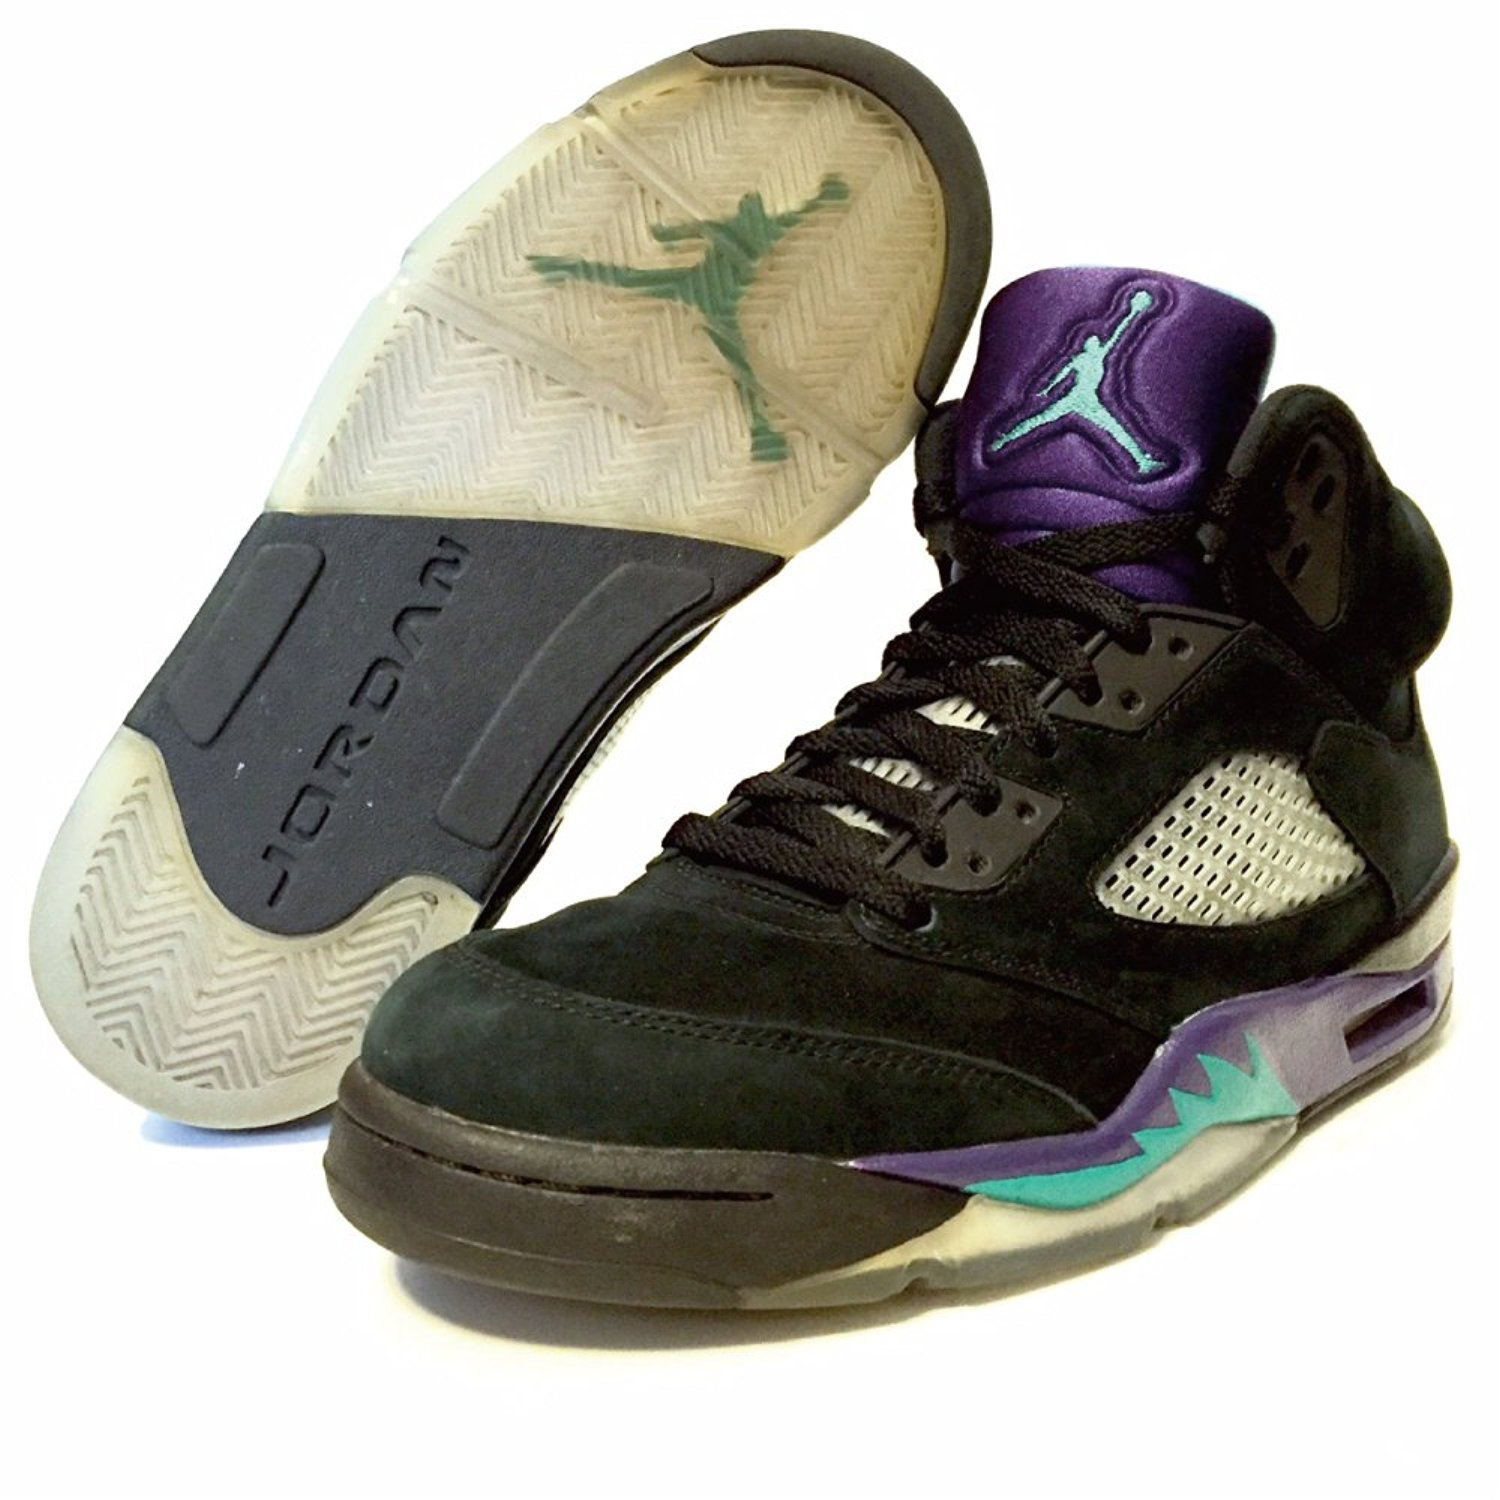 half off 03293 8525c Get Quotations · NIKE AIR JORDAN 5 RETRO MENS 136027-007